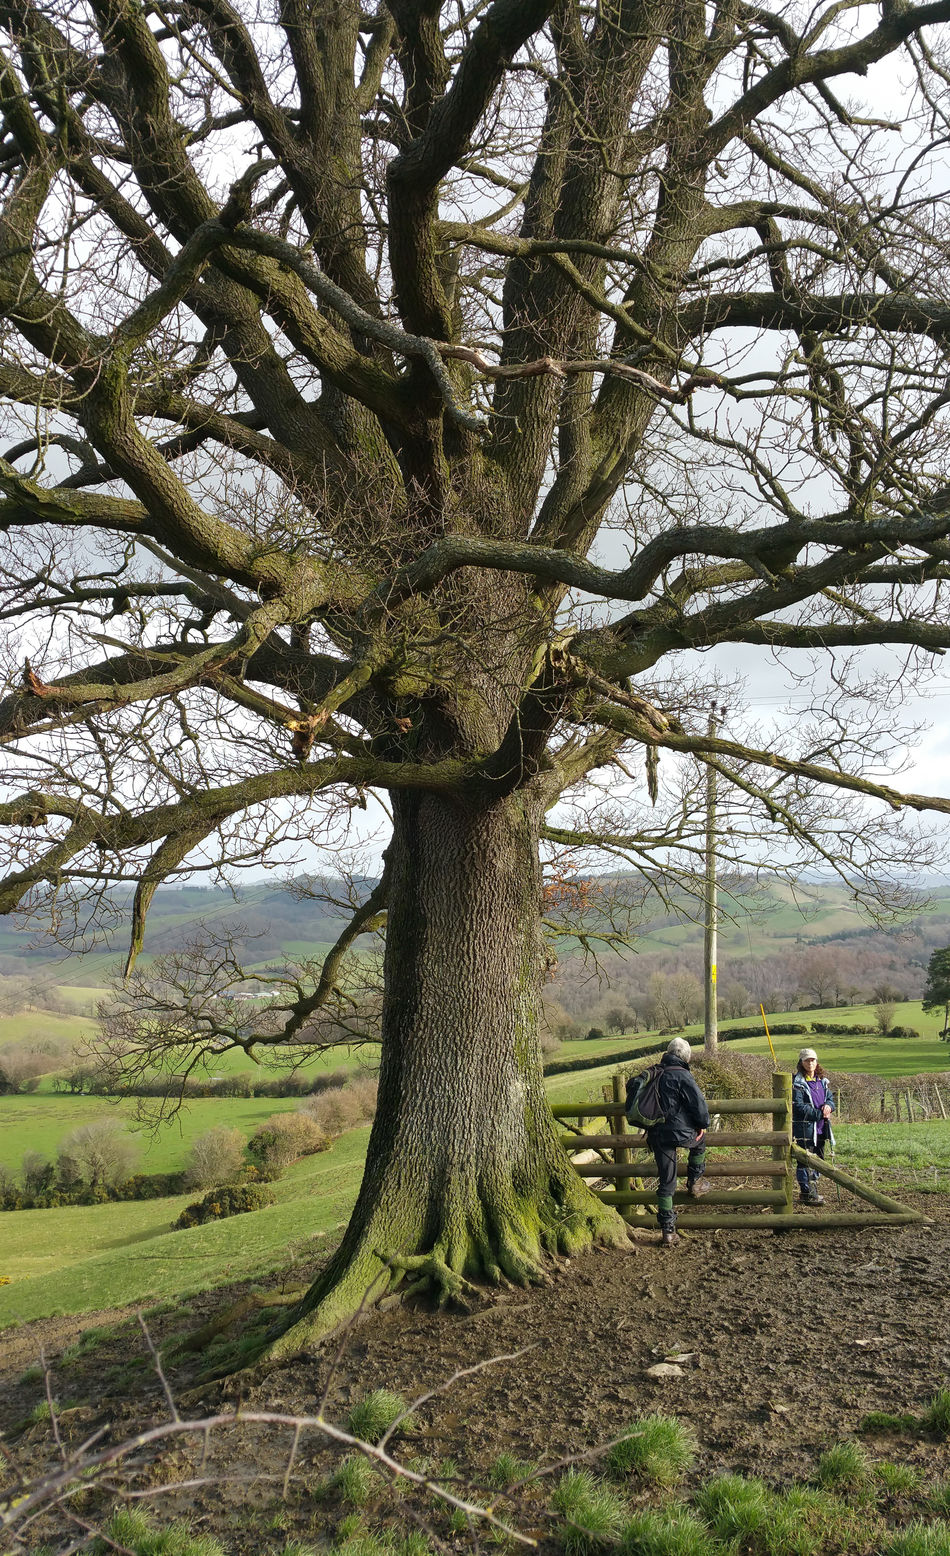 Tree Real People Nature Growth Outdoors Day Sky Beauty In Nature People Elderly Women Walking Hiking Ramblers Oak Wales Newtown Powys Newtown Nature Only Women Leisure Activity Women Around The World Britain